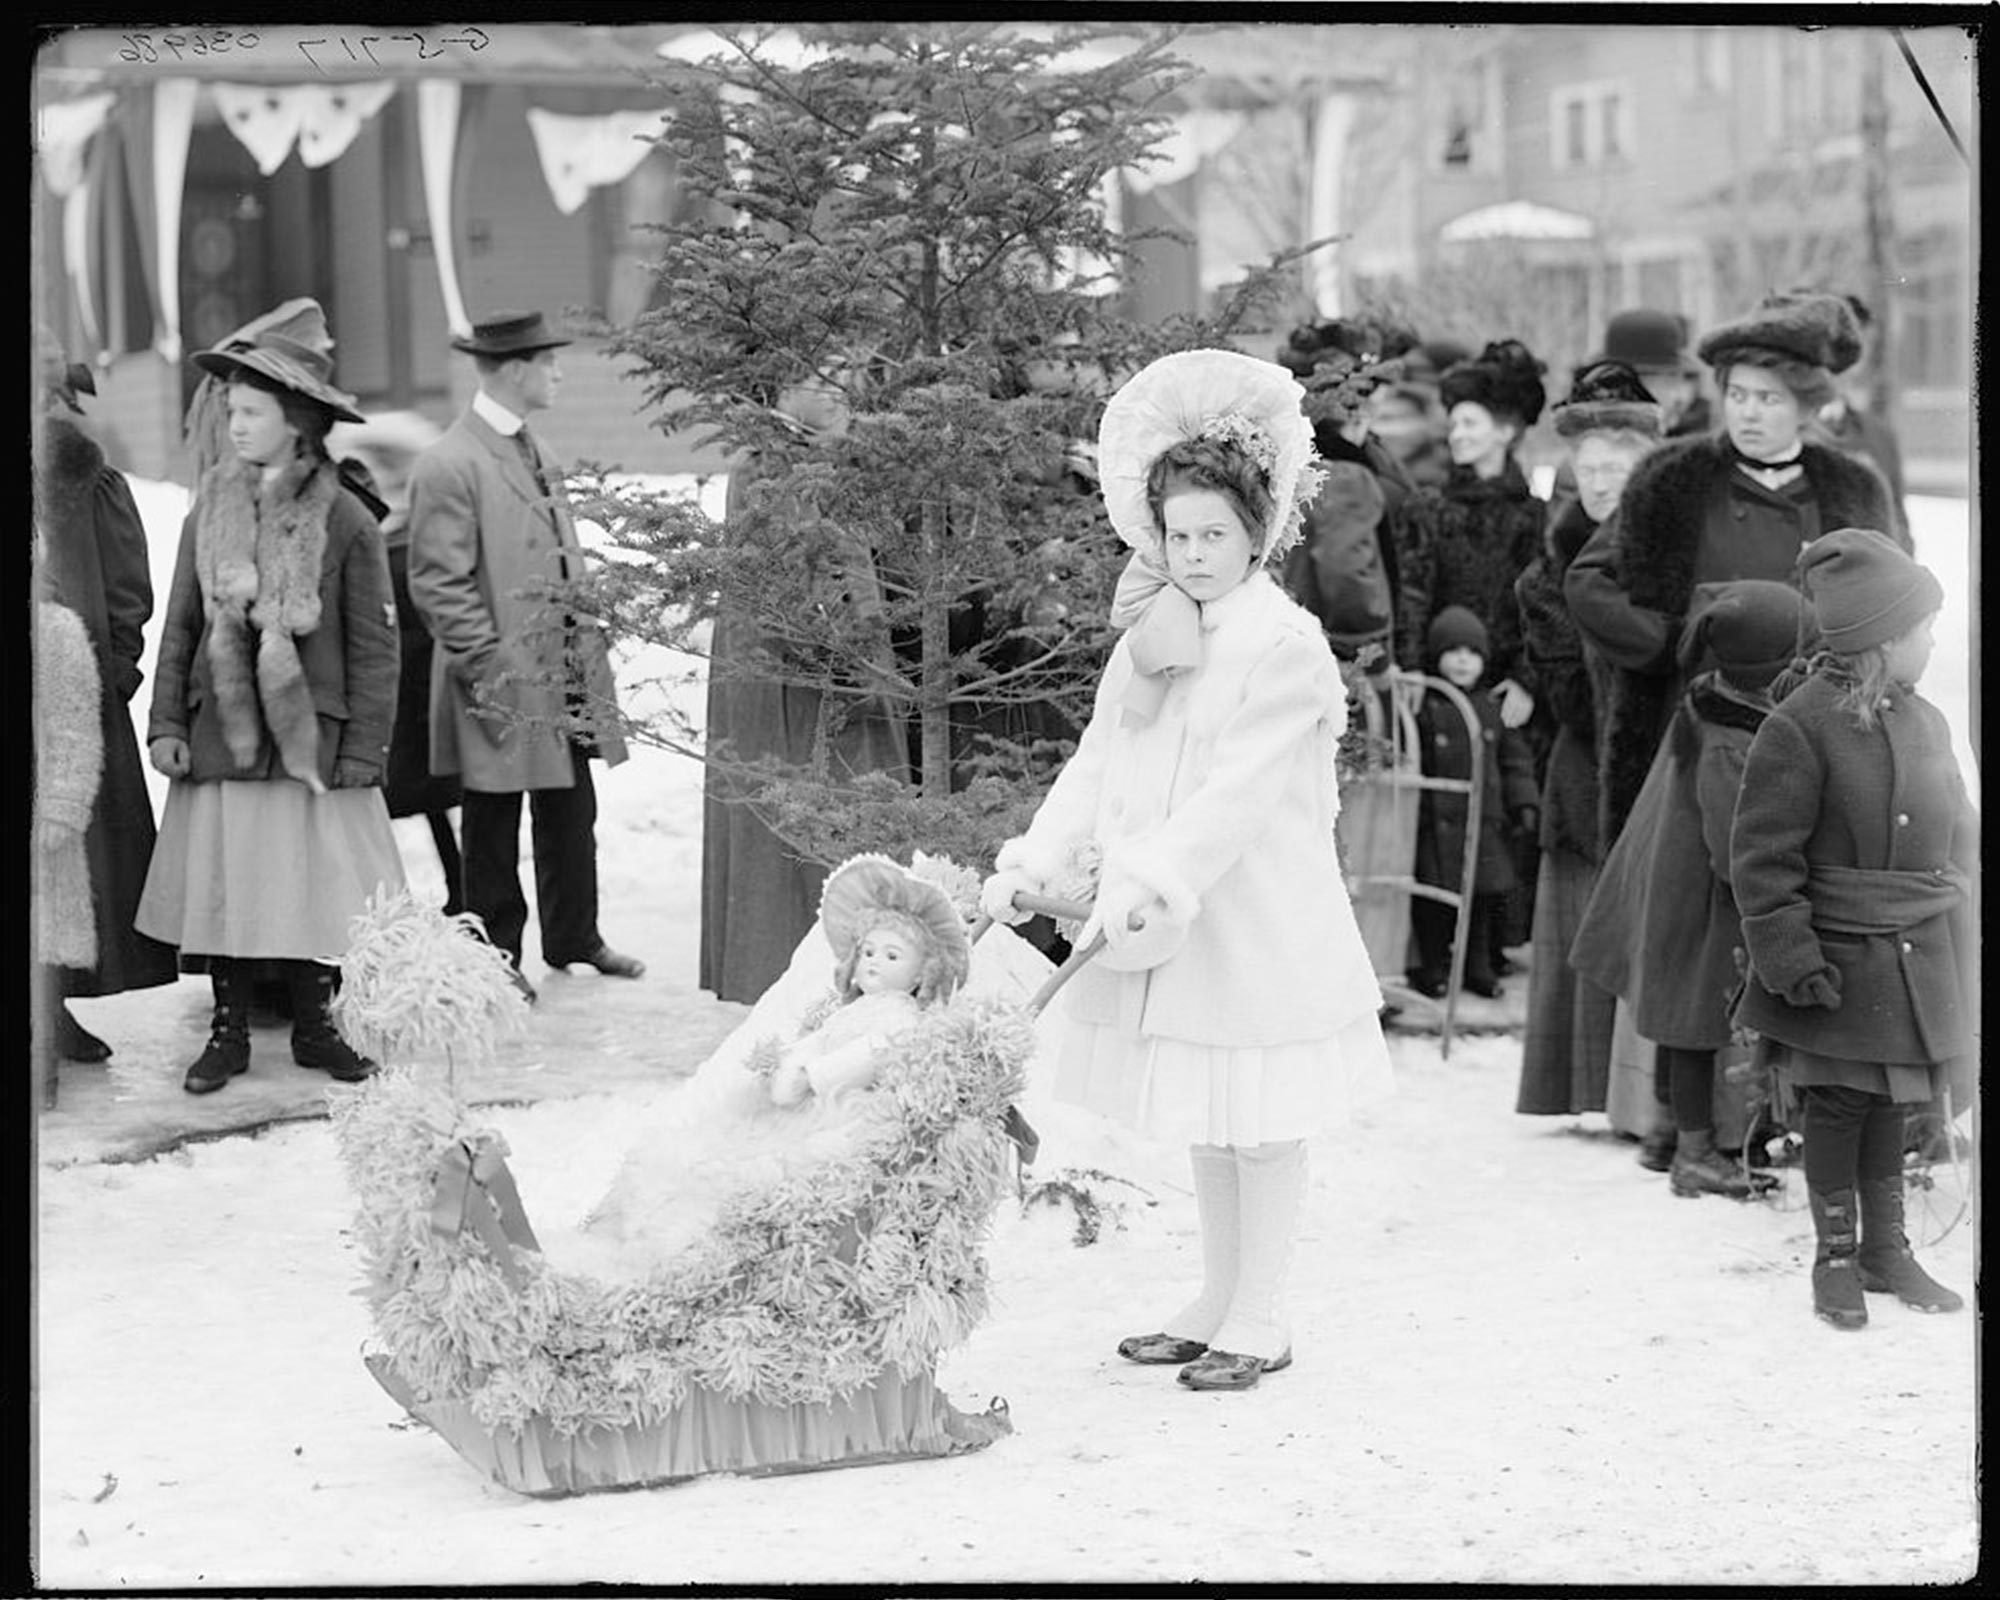 3db5fabe1b7 Vintage Photos of What Winter Was Like in the Past